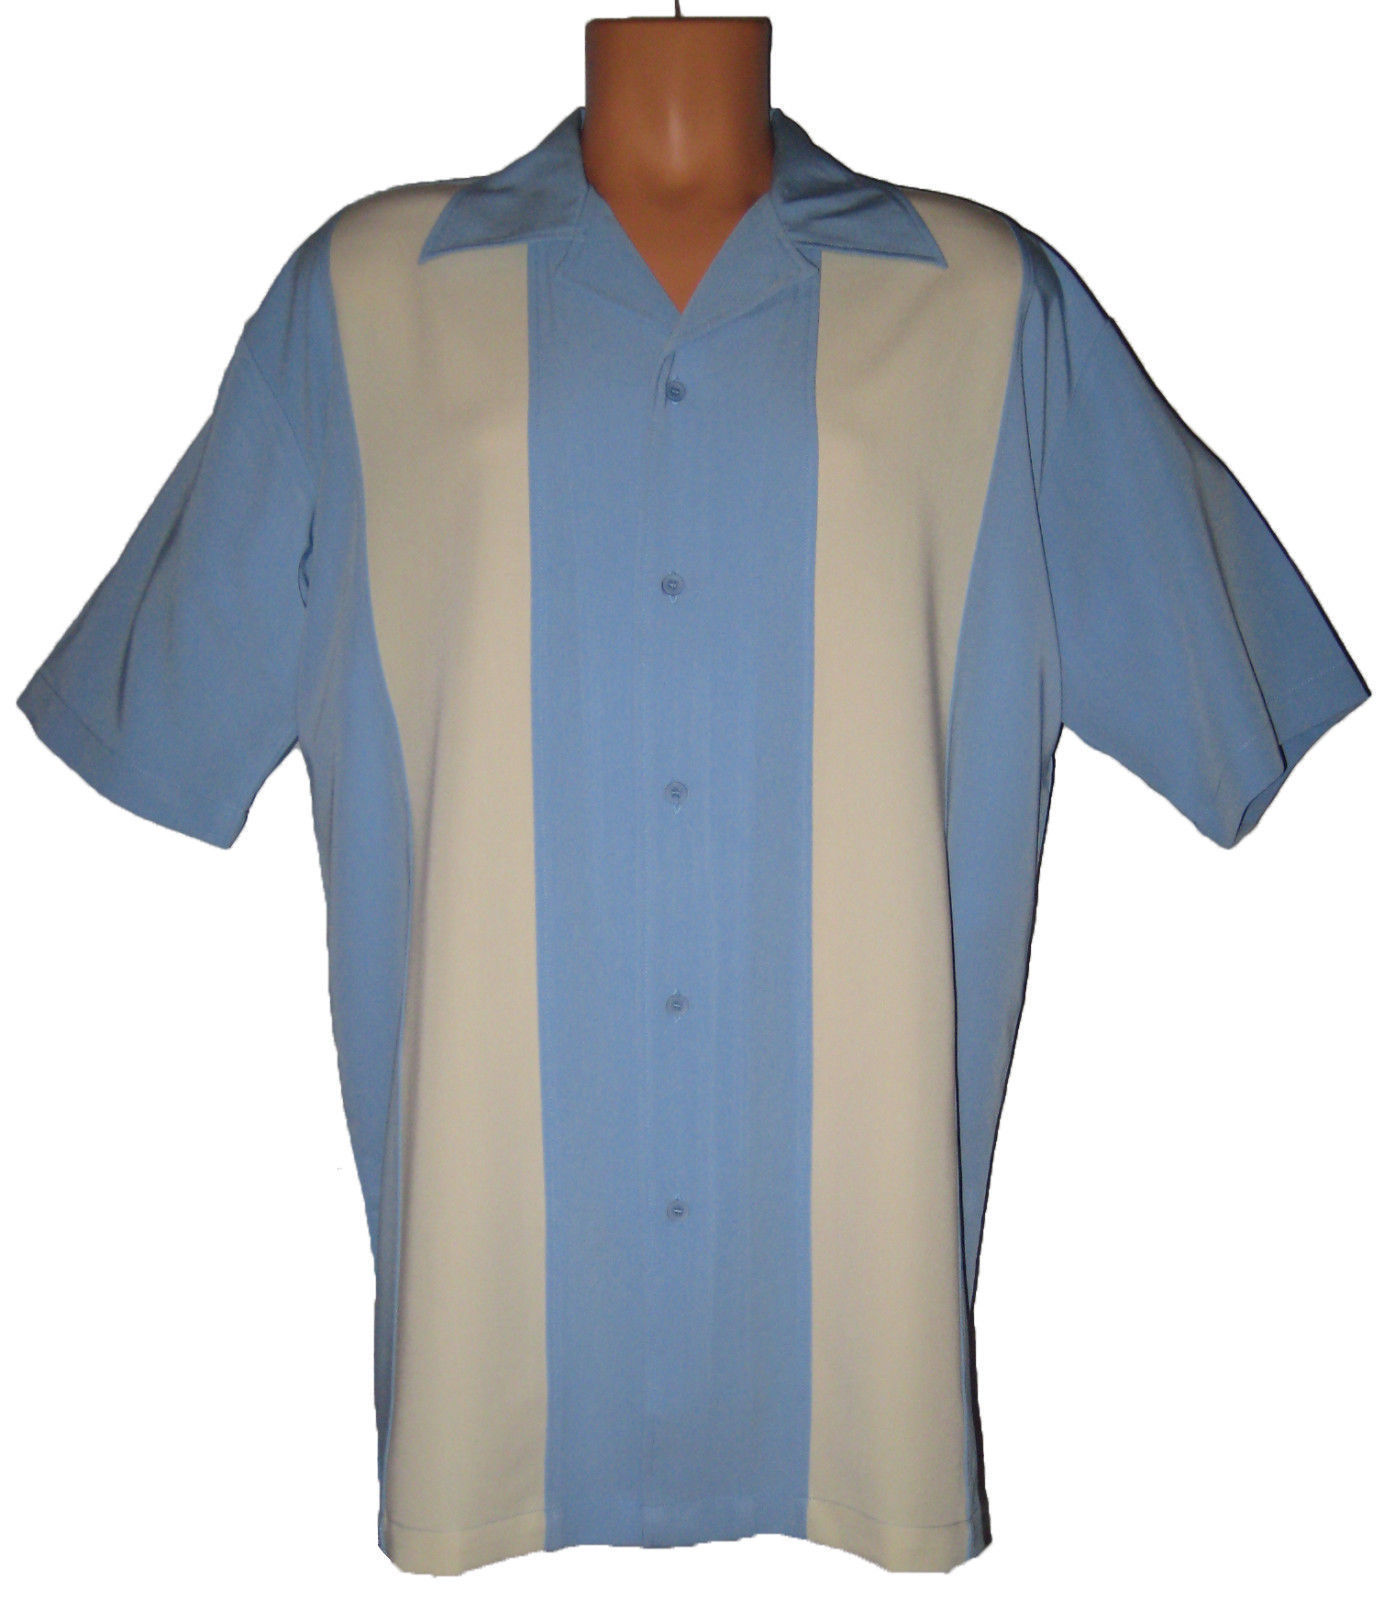 Mens bowling shirts new retro vintage charlie style for Best mens dress shirts under 50